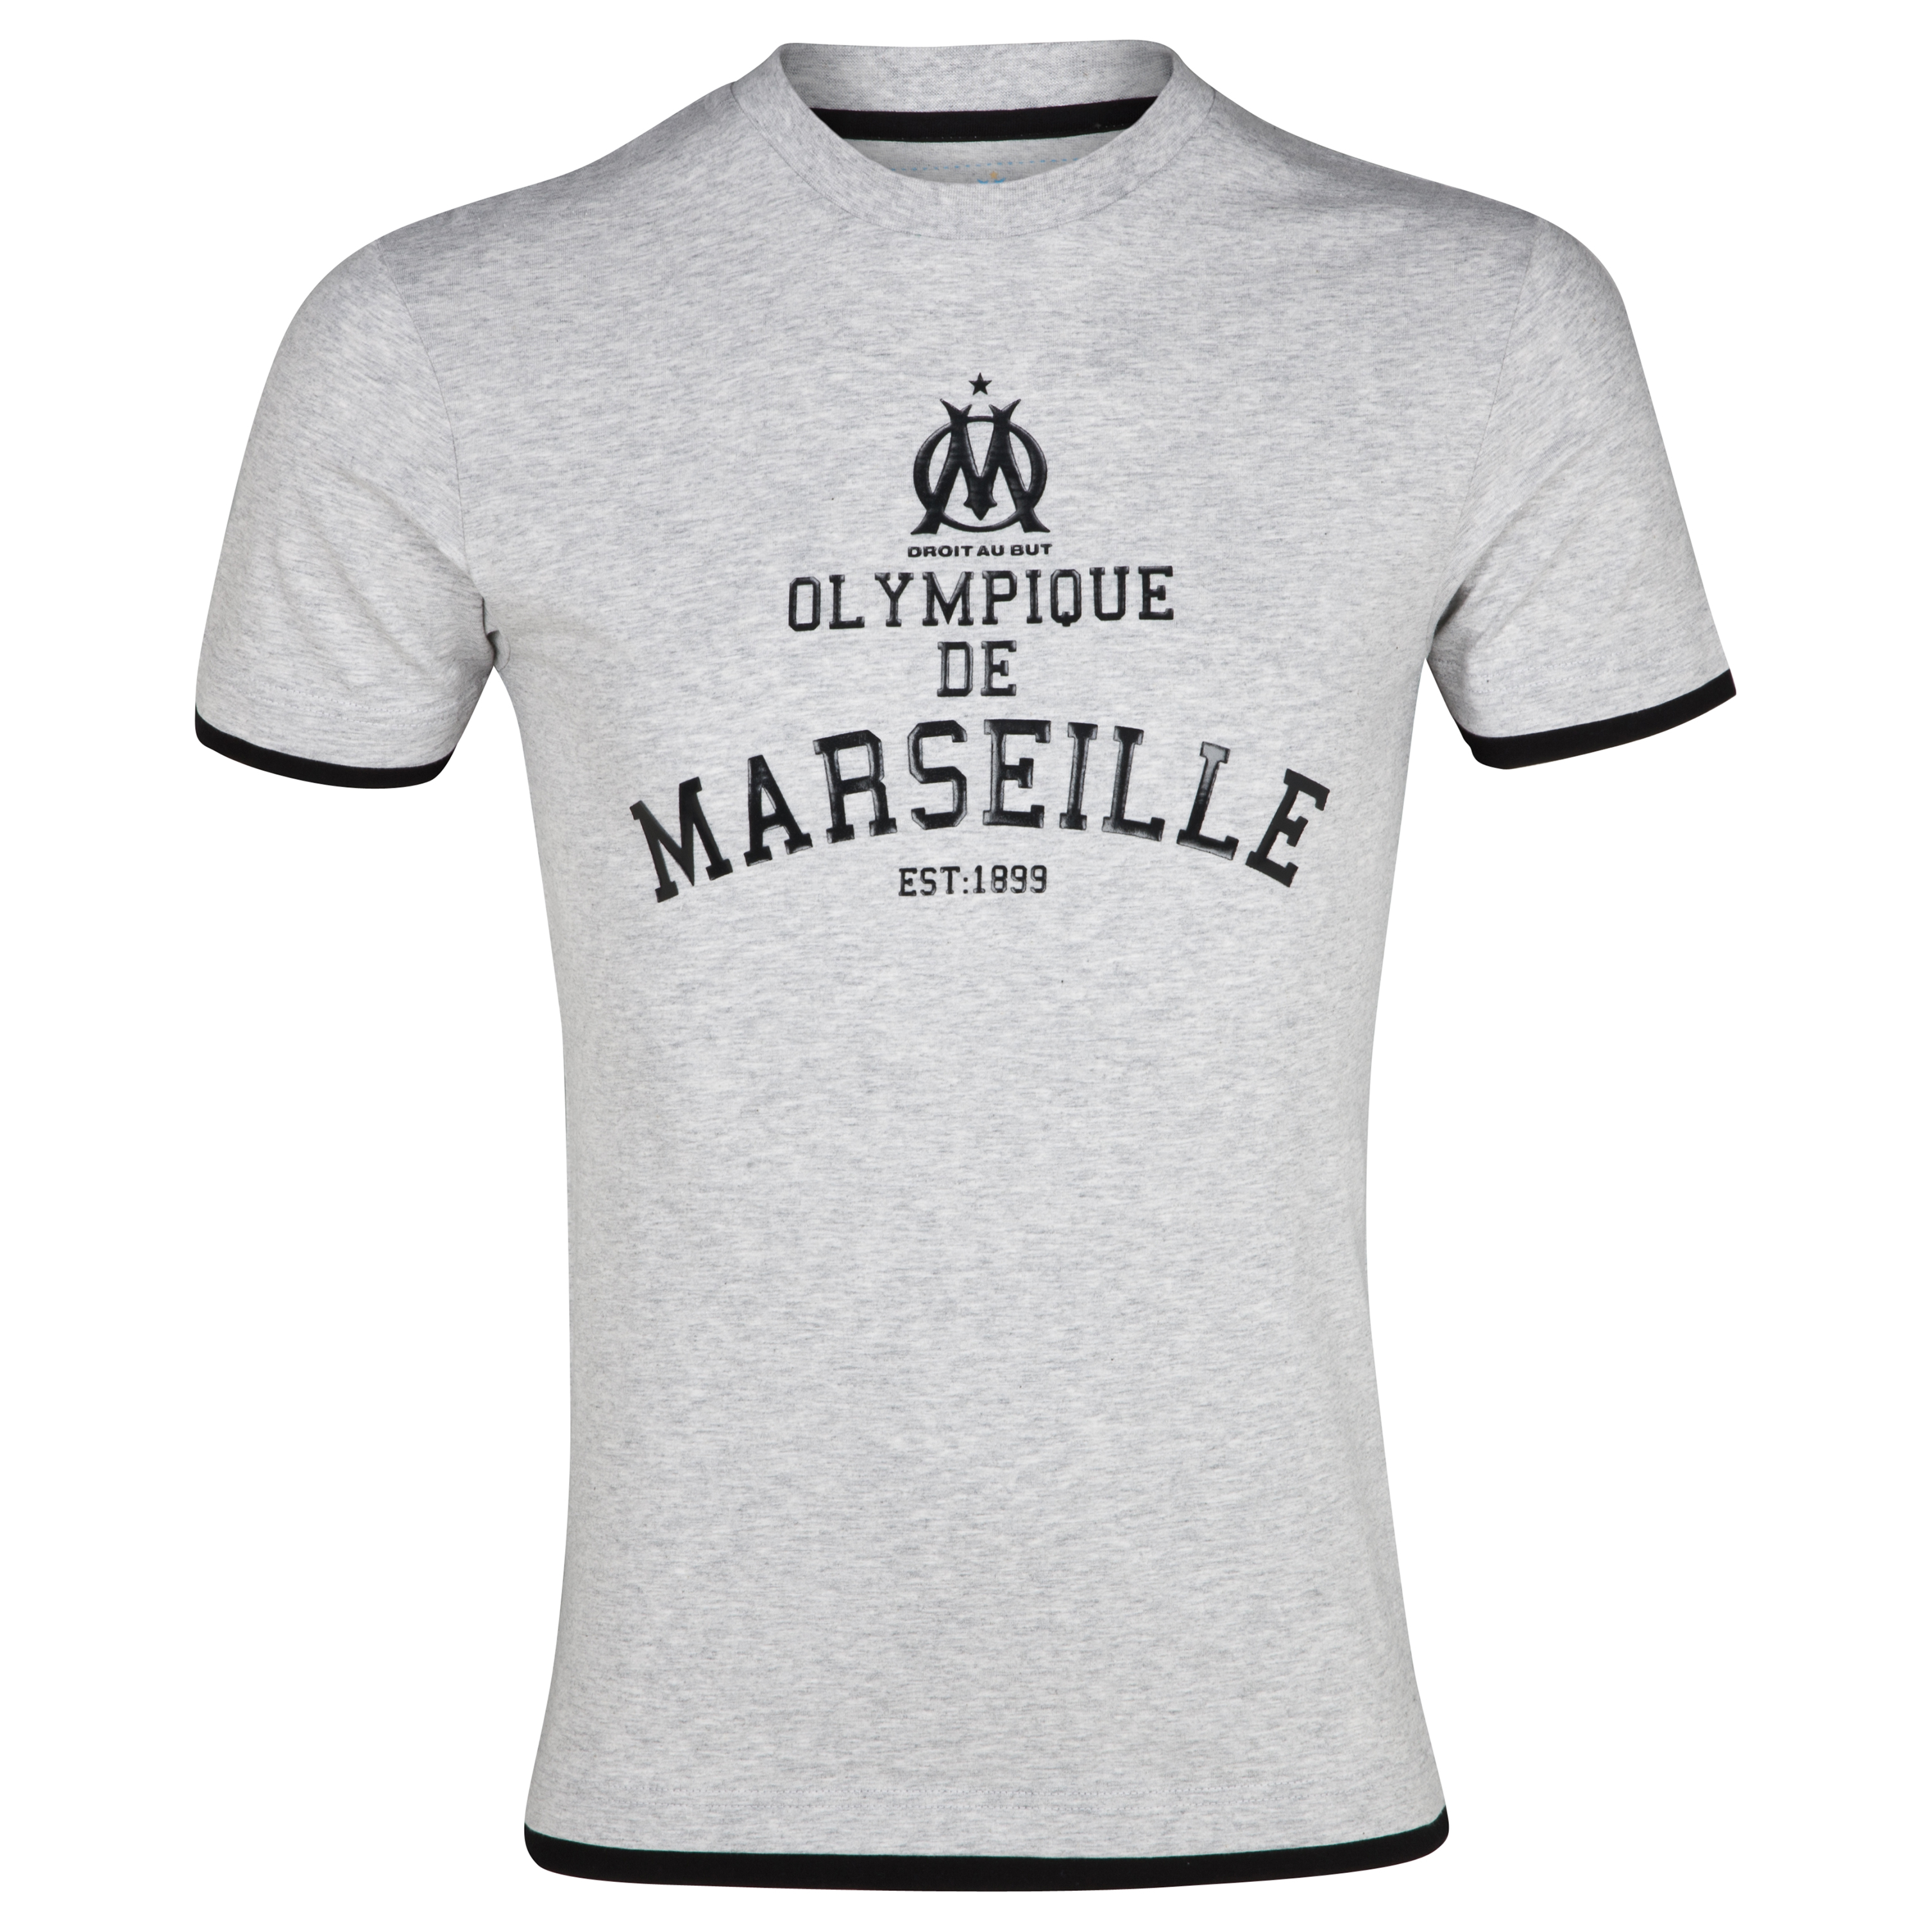 T-shirt ras du cou Athletic Club Olympique de Marseille